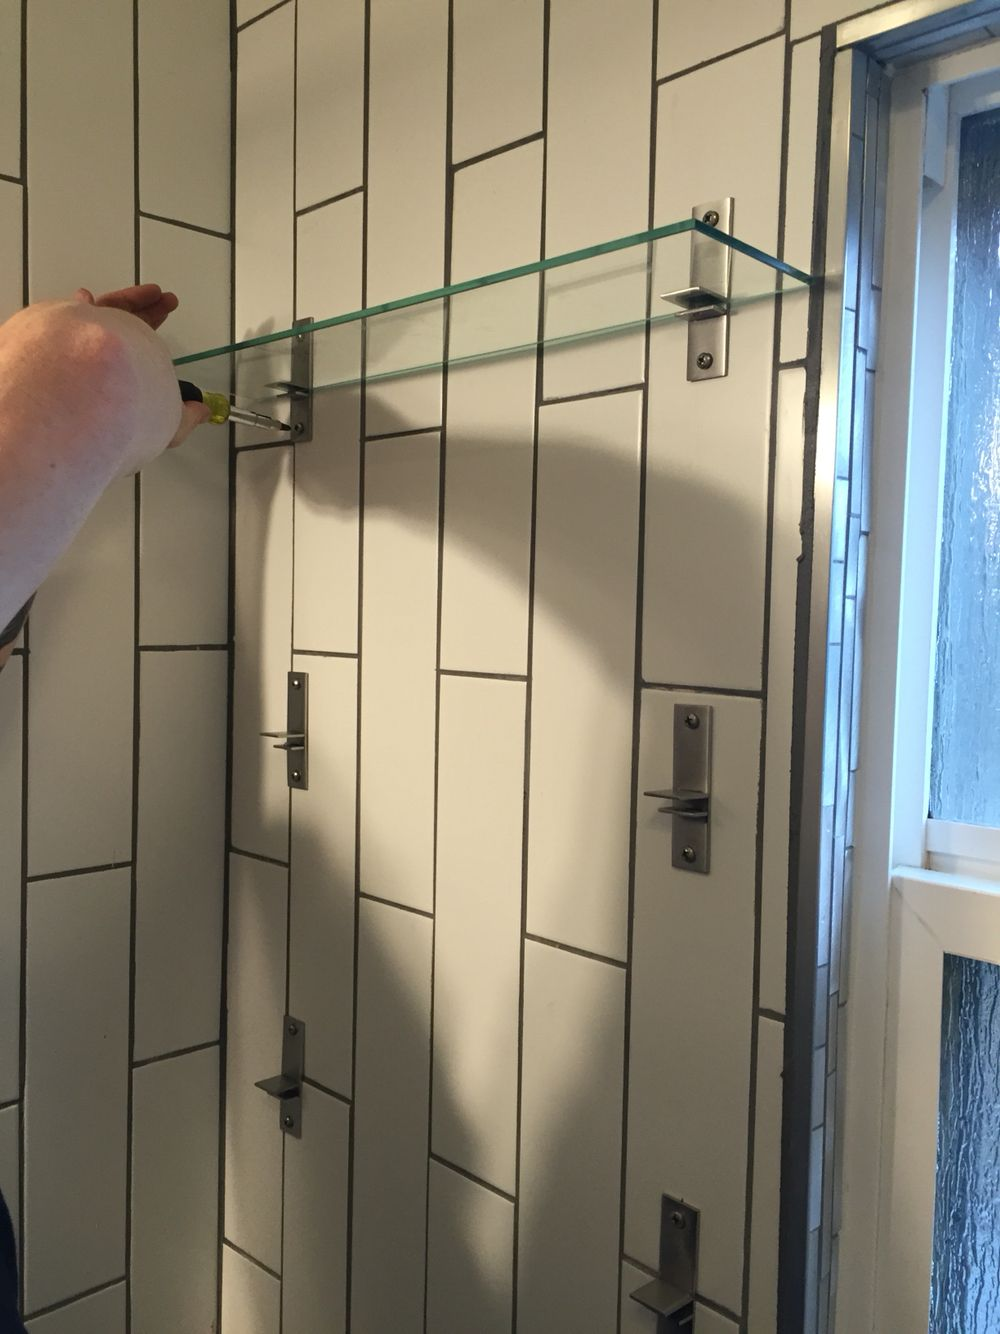 Glass shelves in the shower instead of a spring loaded